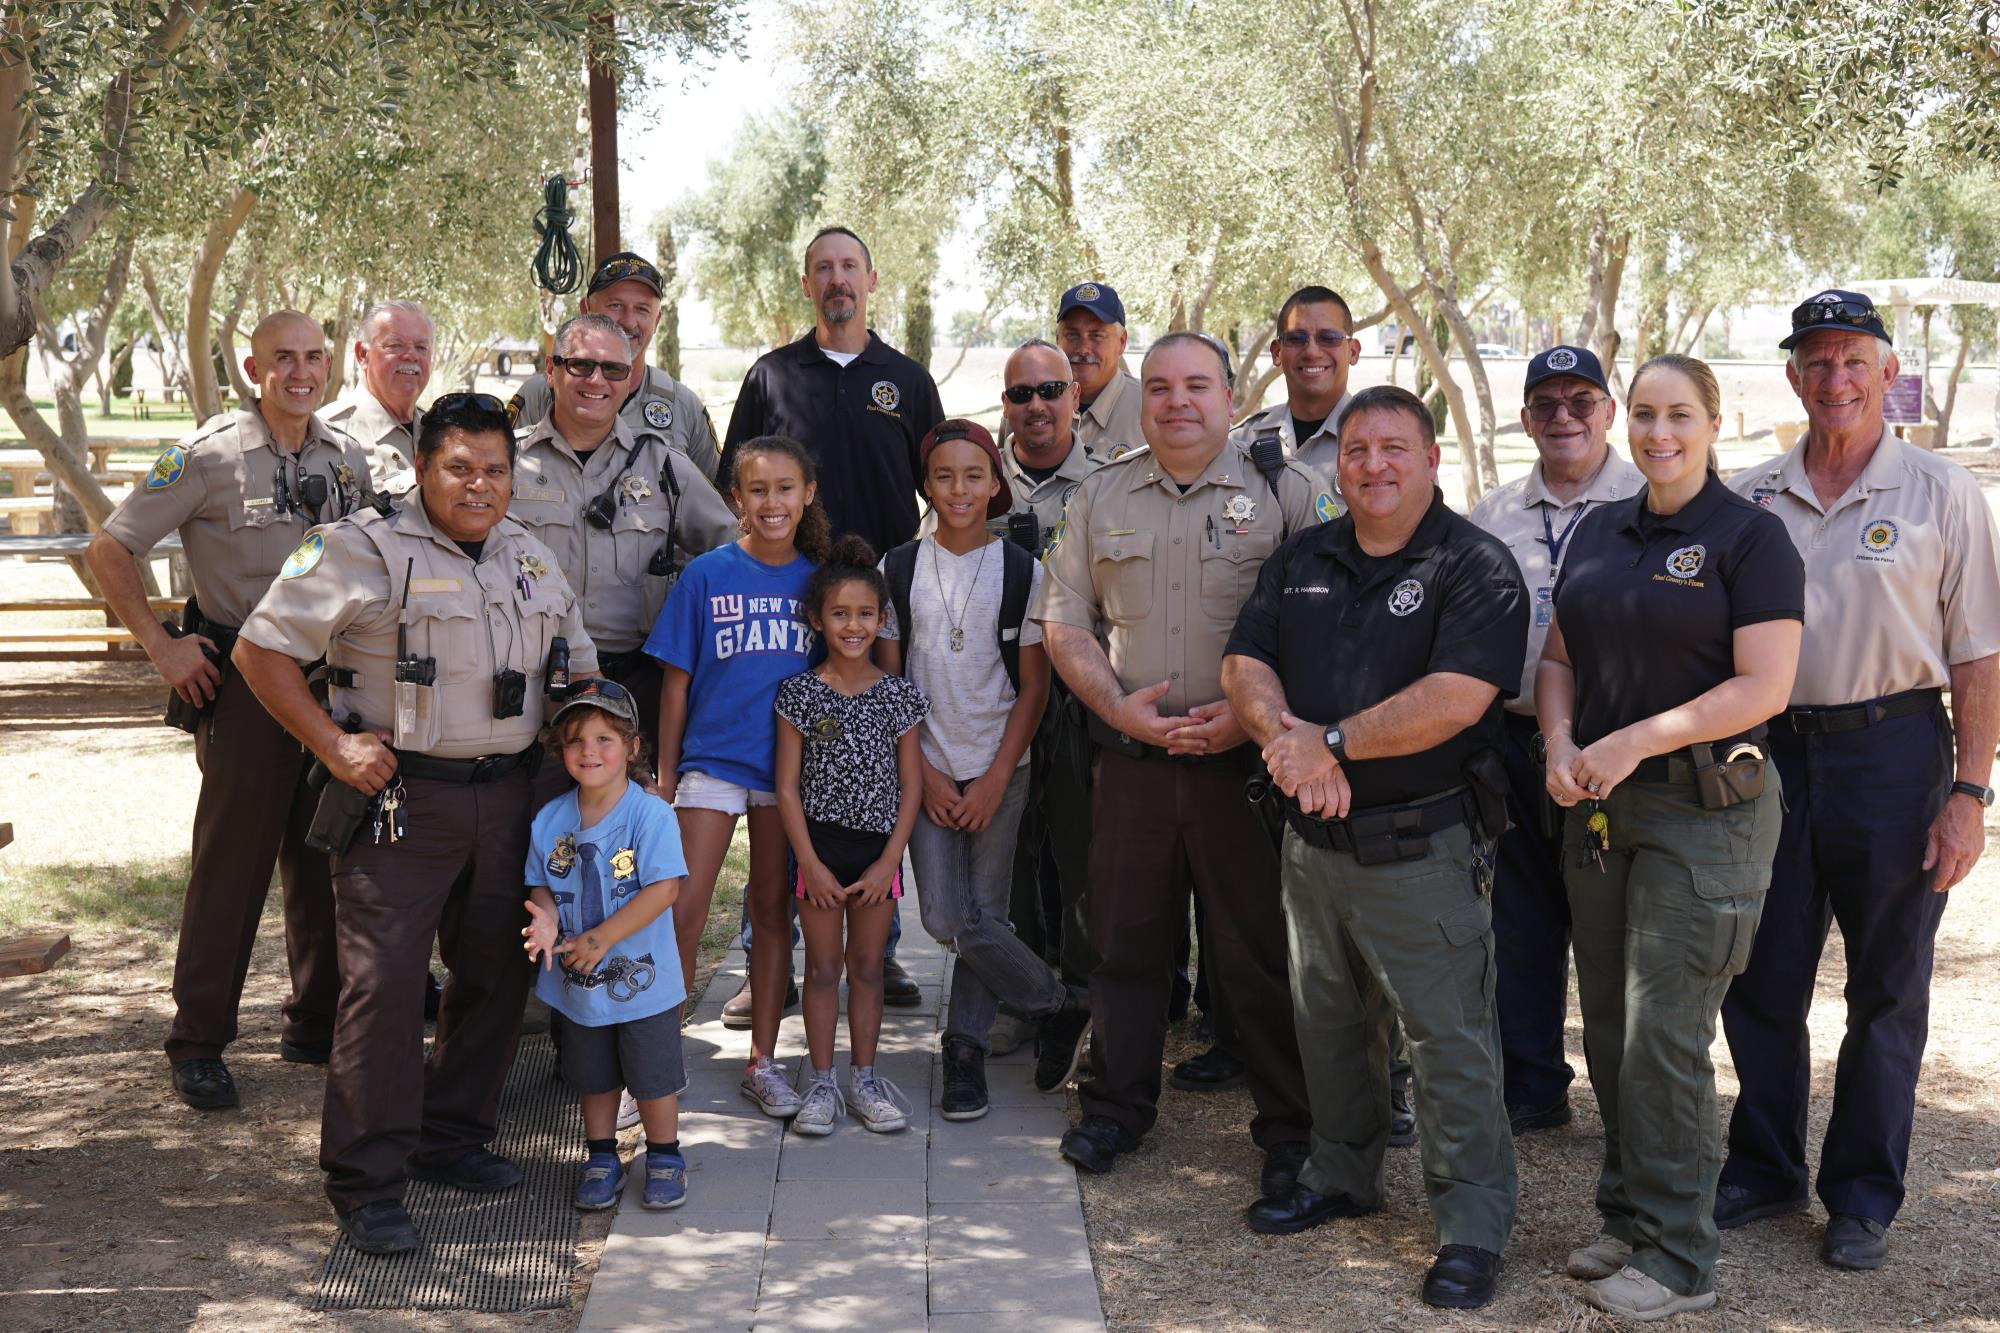 The Town of Queen Creek Celebrates Local Law Enforcement